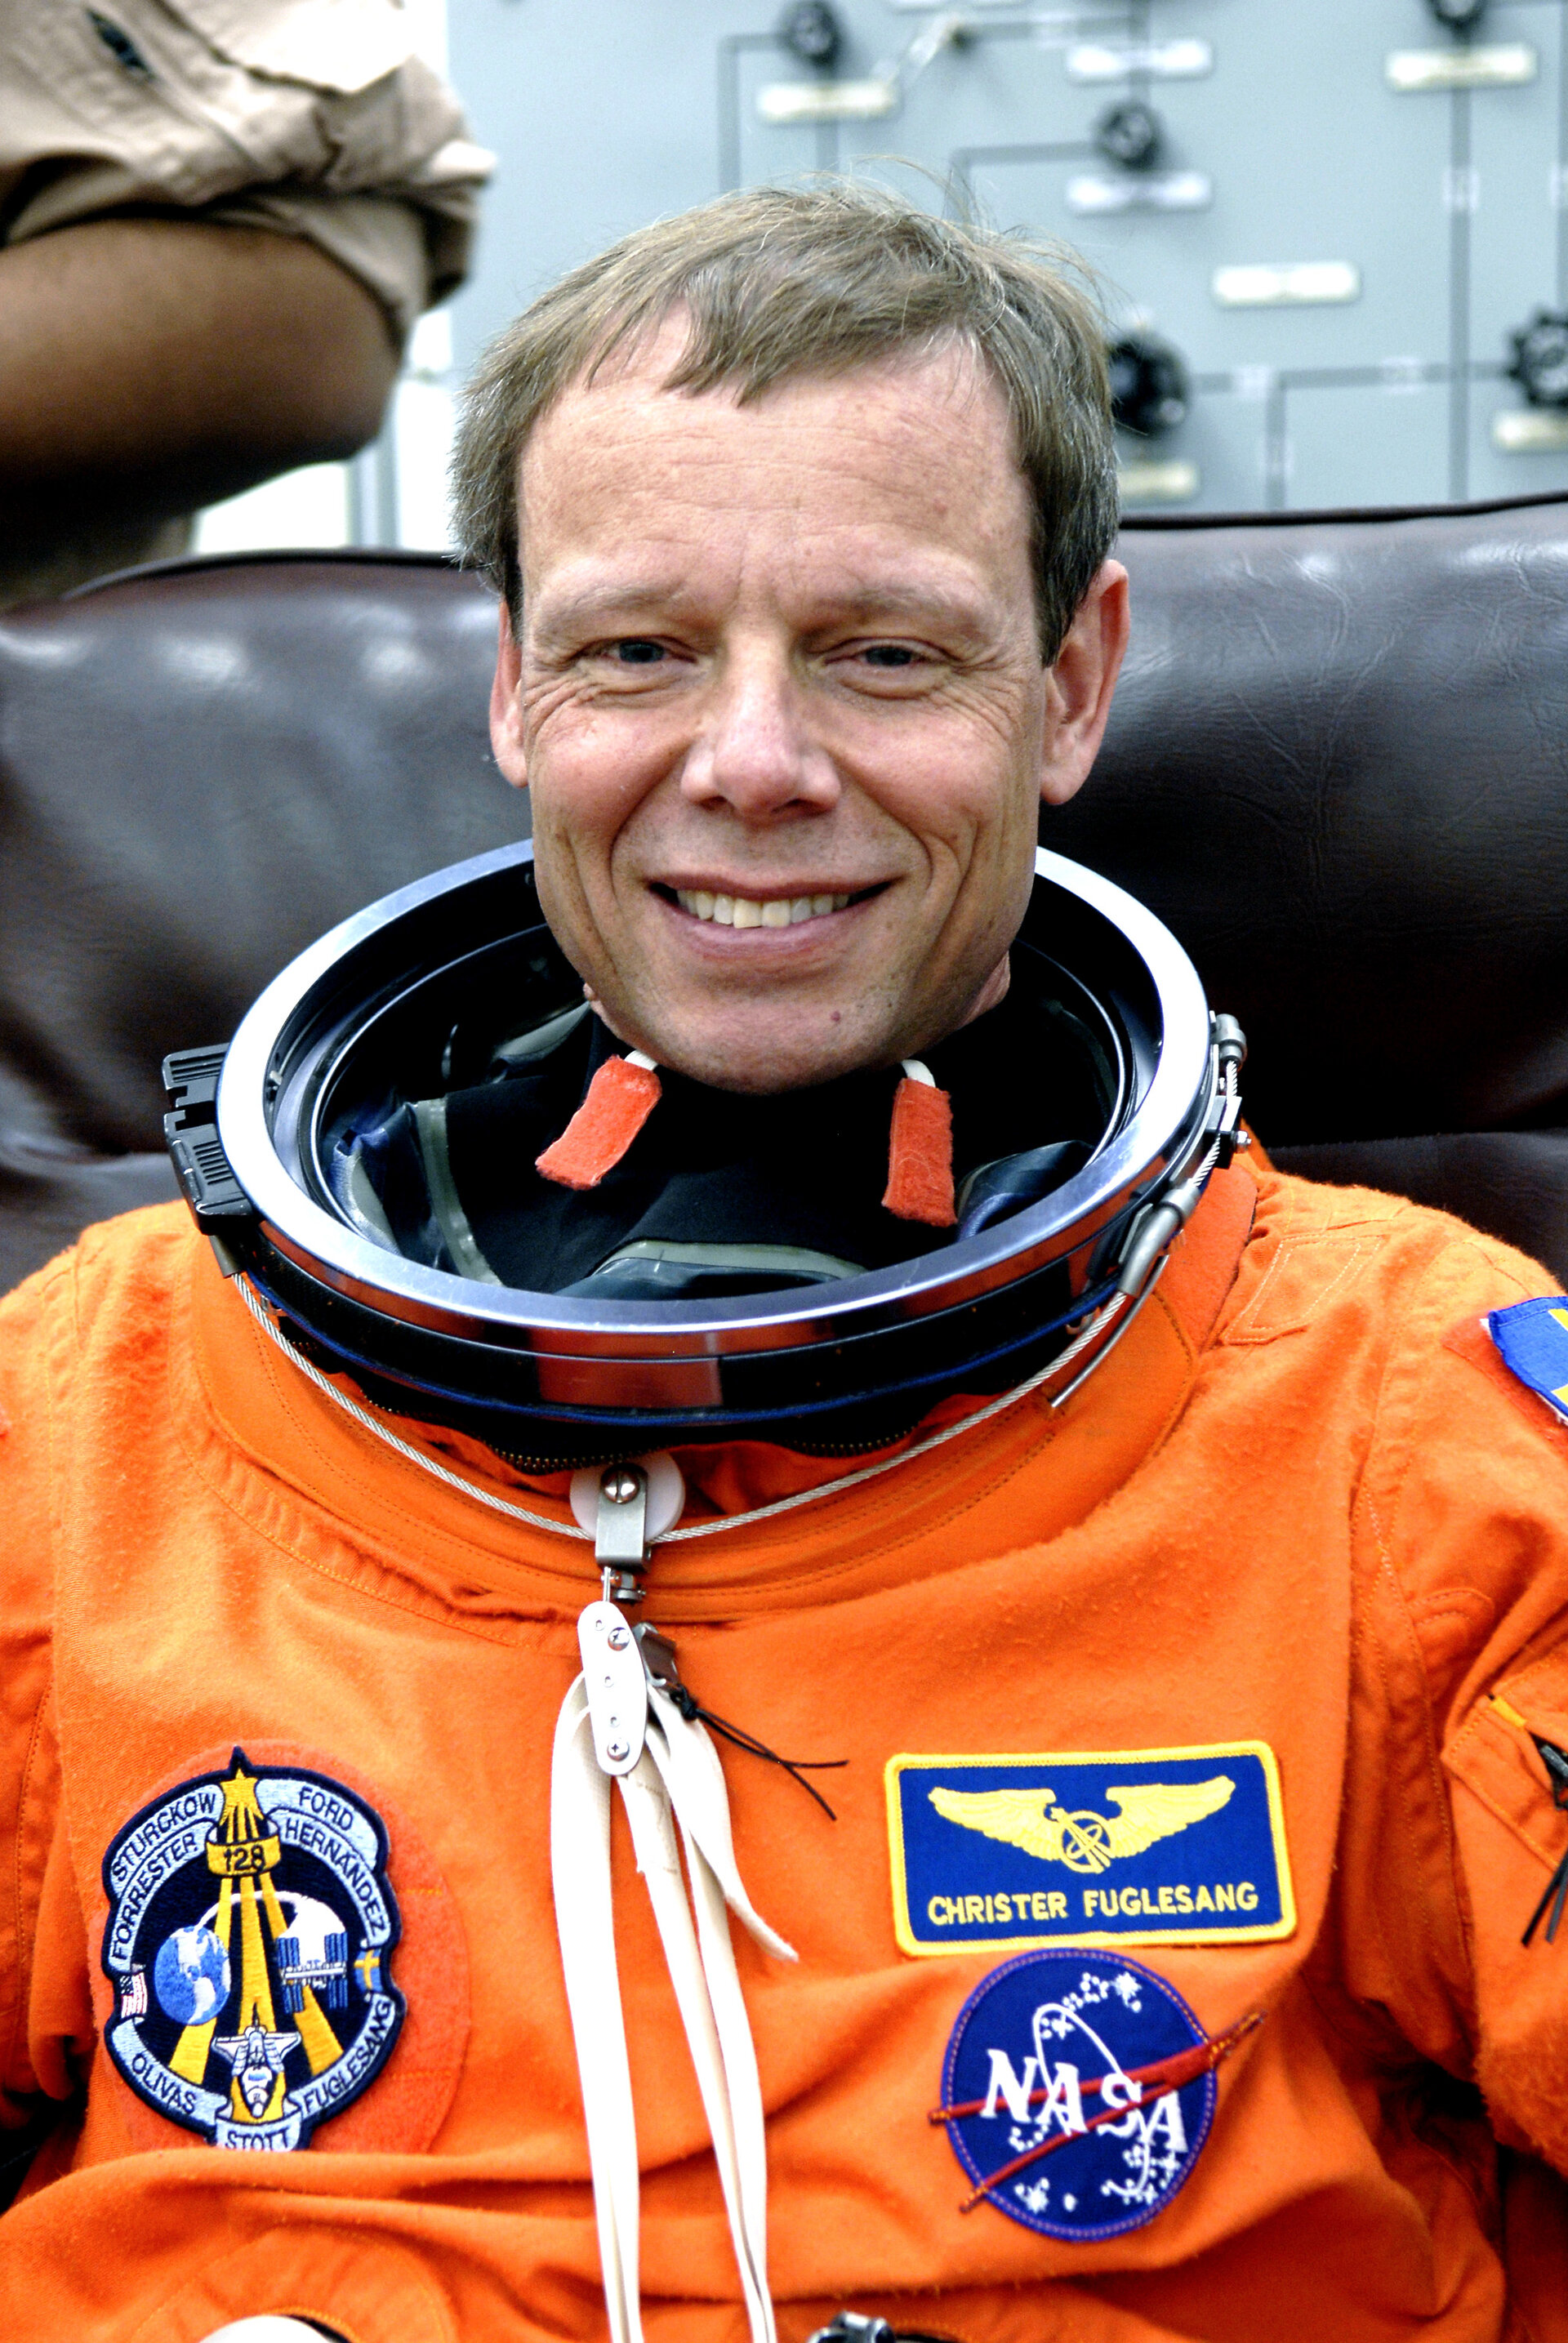 STS-128 will be Christer Fuglesang's second spaceflight